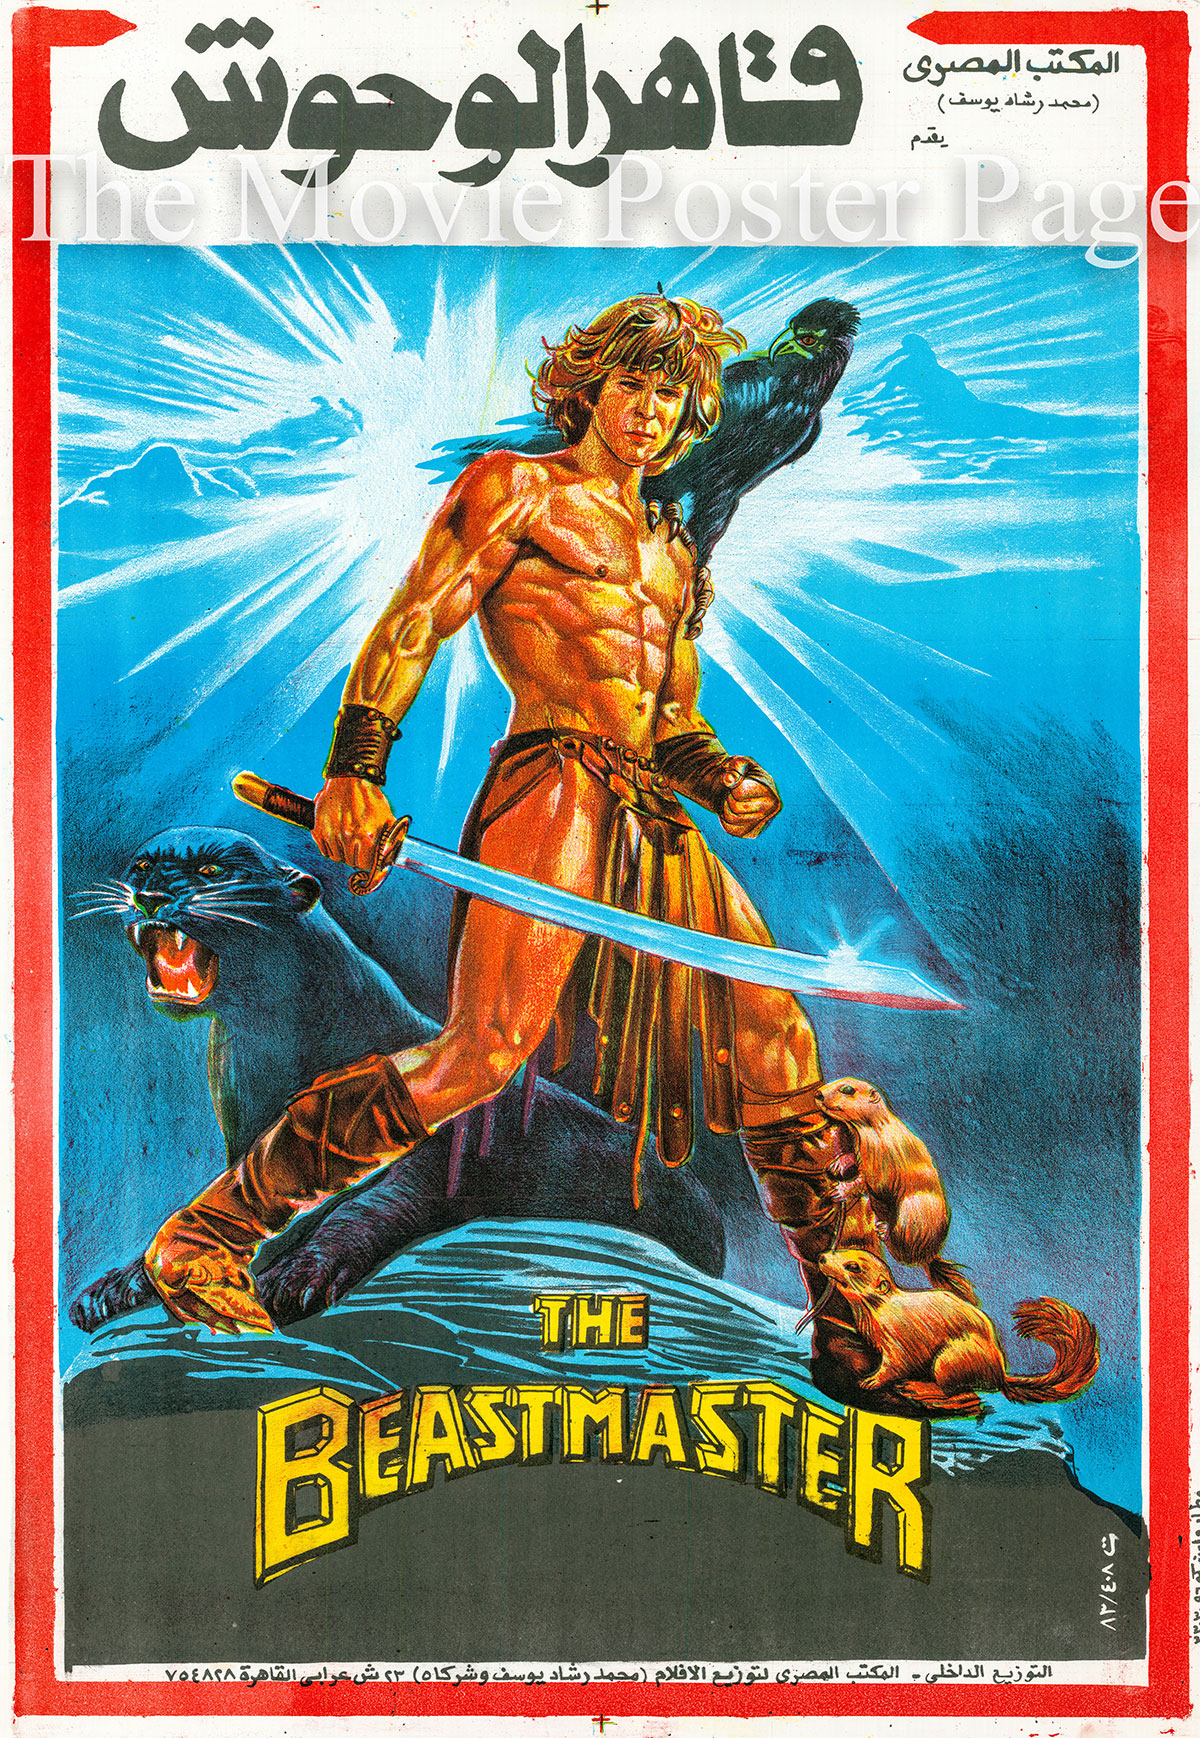 Pictured is an Egyptian promotional poster for the 1982 Don Coscarelli film The Beastmaster, starring Marc Singer.